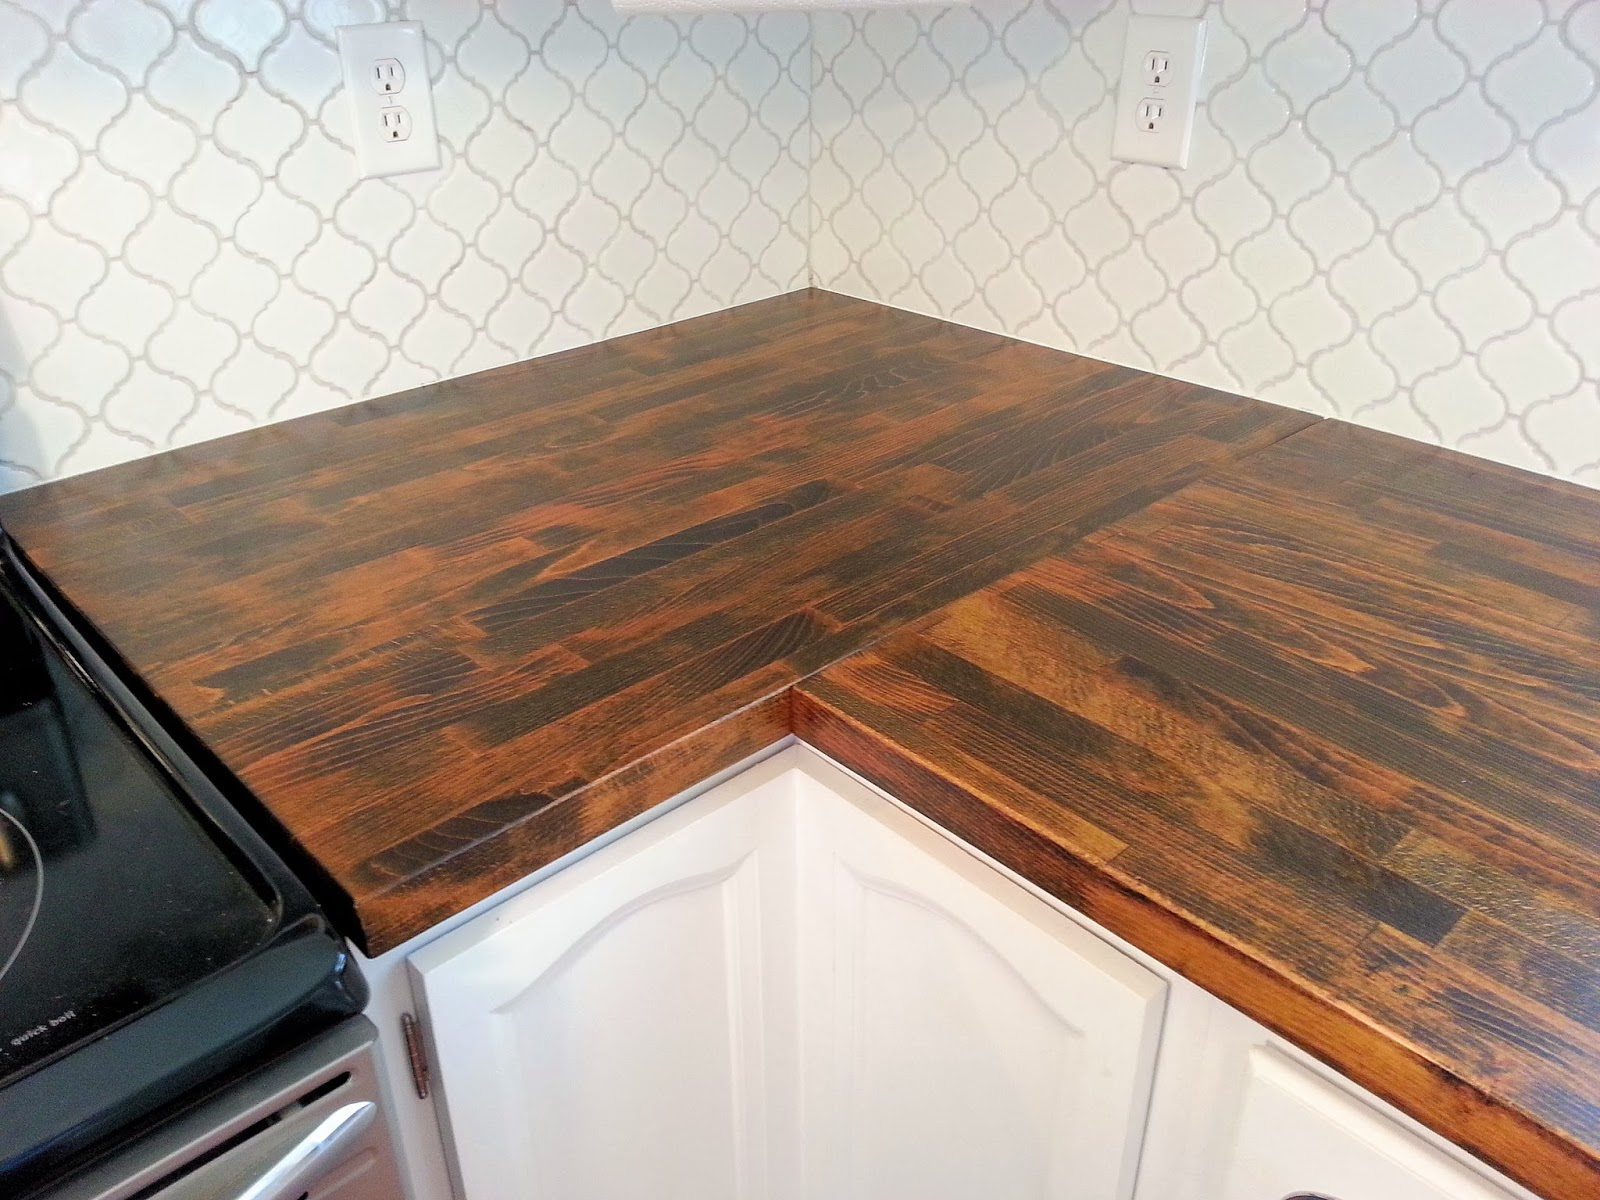 Stained Ikea Butcher Block Countertop and Moroccan Tile Backsplash